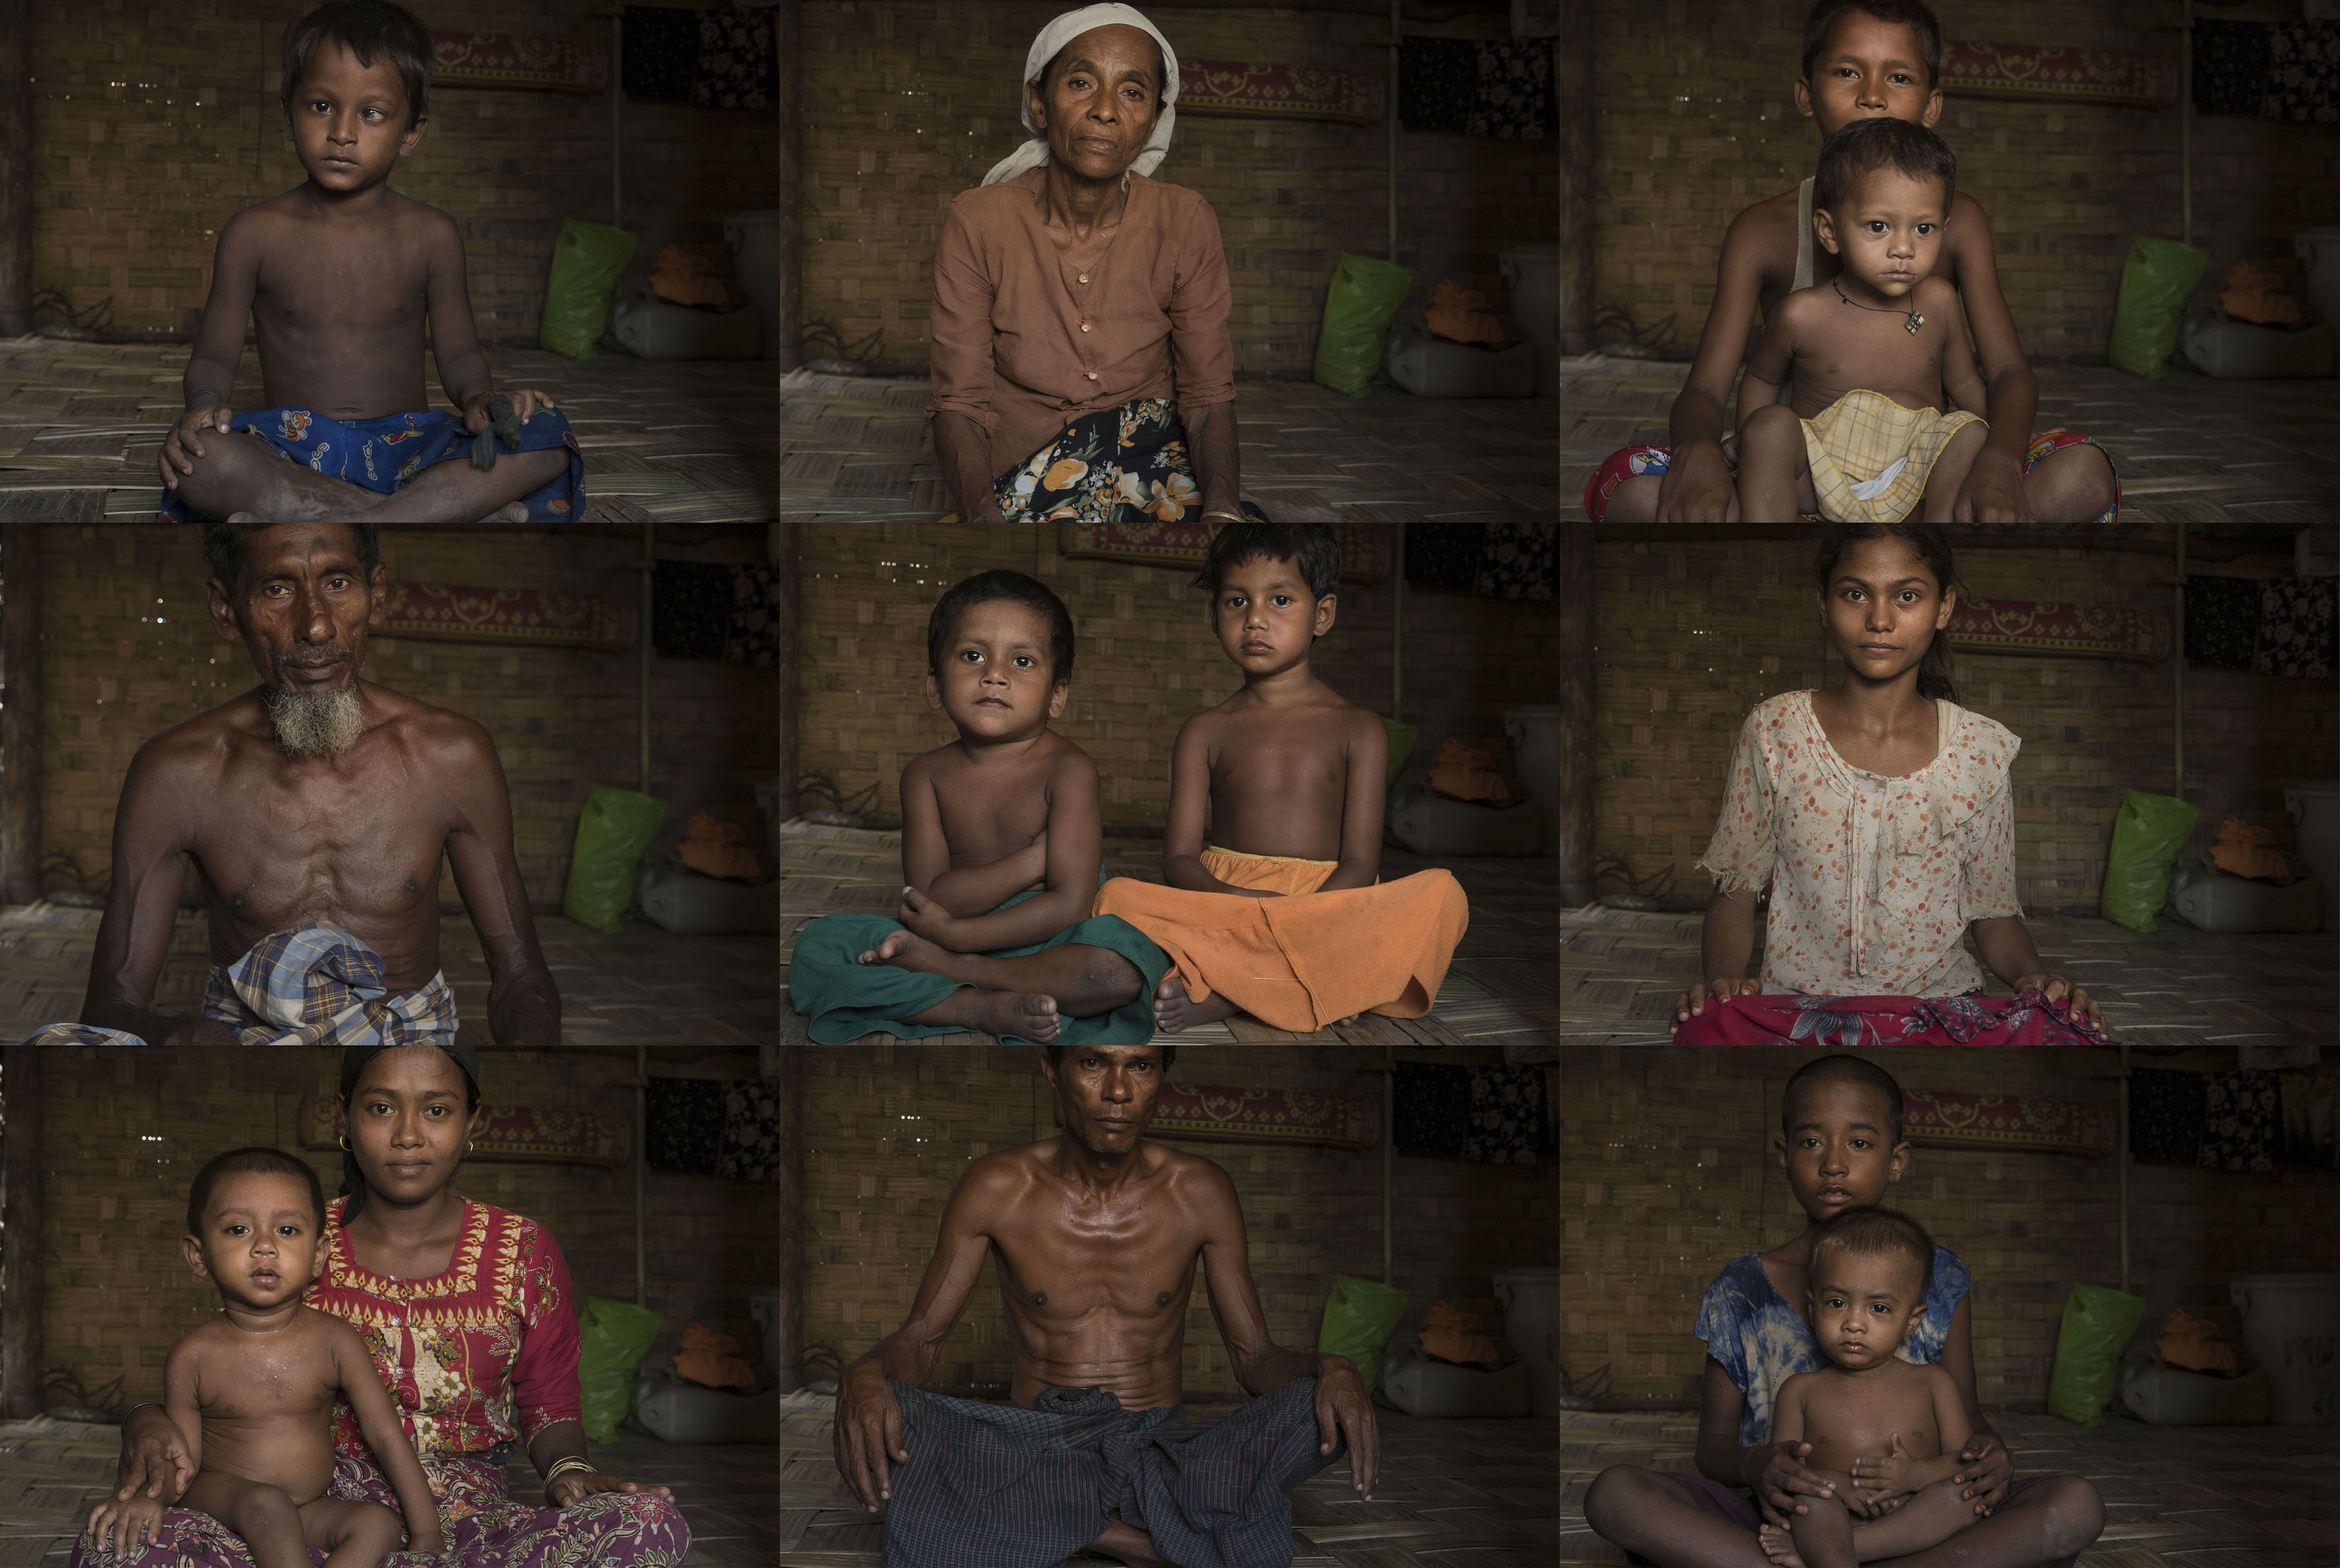 Rohingya people in the Internally Displaced Person (IDP) camps in Sittwe, Myanmar, June, 2016. An estimated 140,000 Rohingya are placed in the IDP camps guarded by the armed police and military.